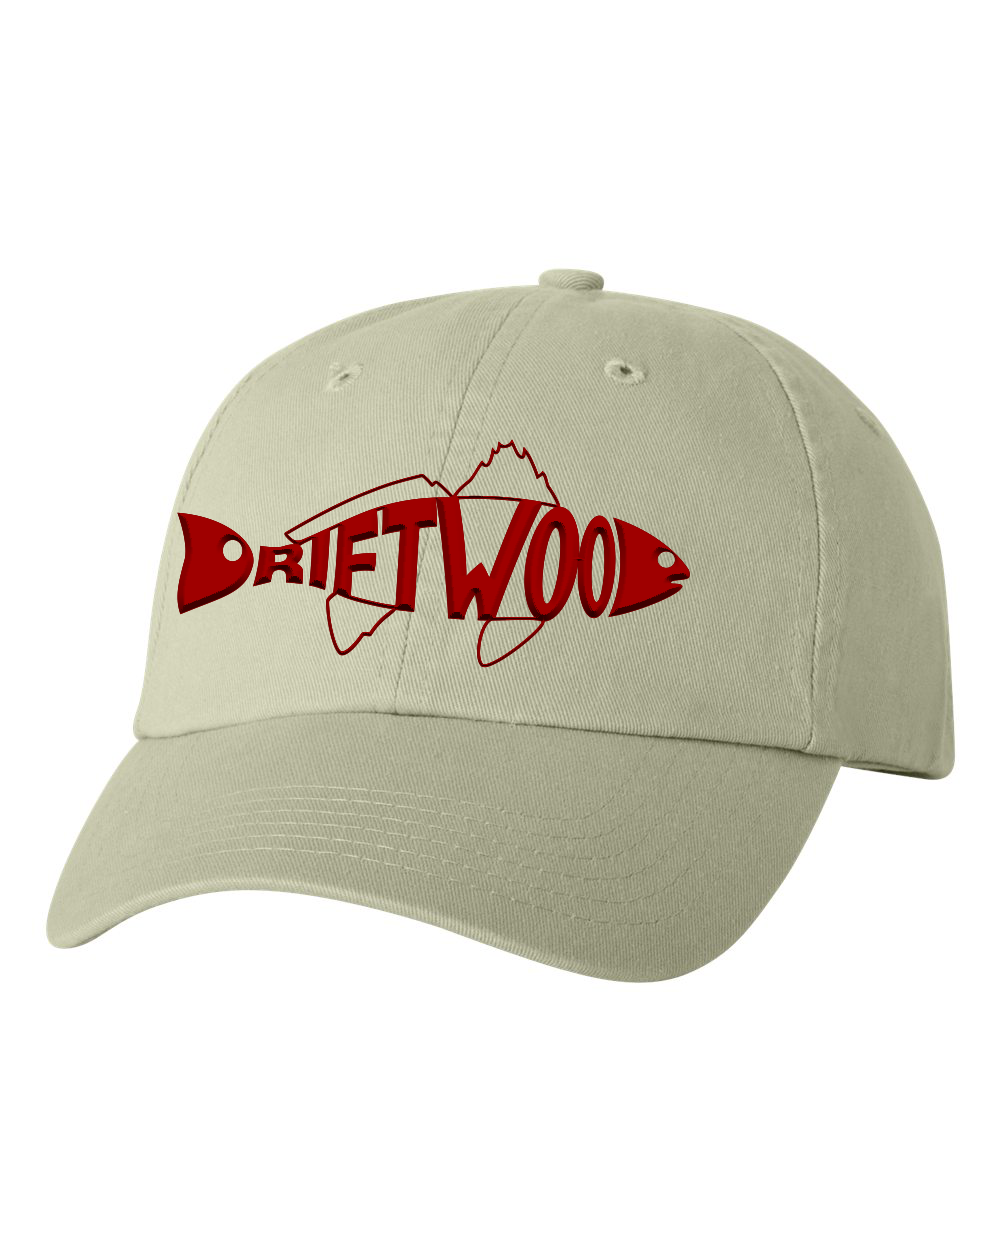 Redfish Dad Hat - Tan/Red